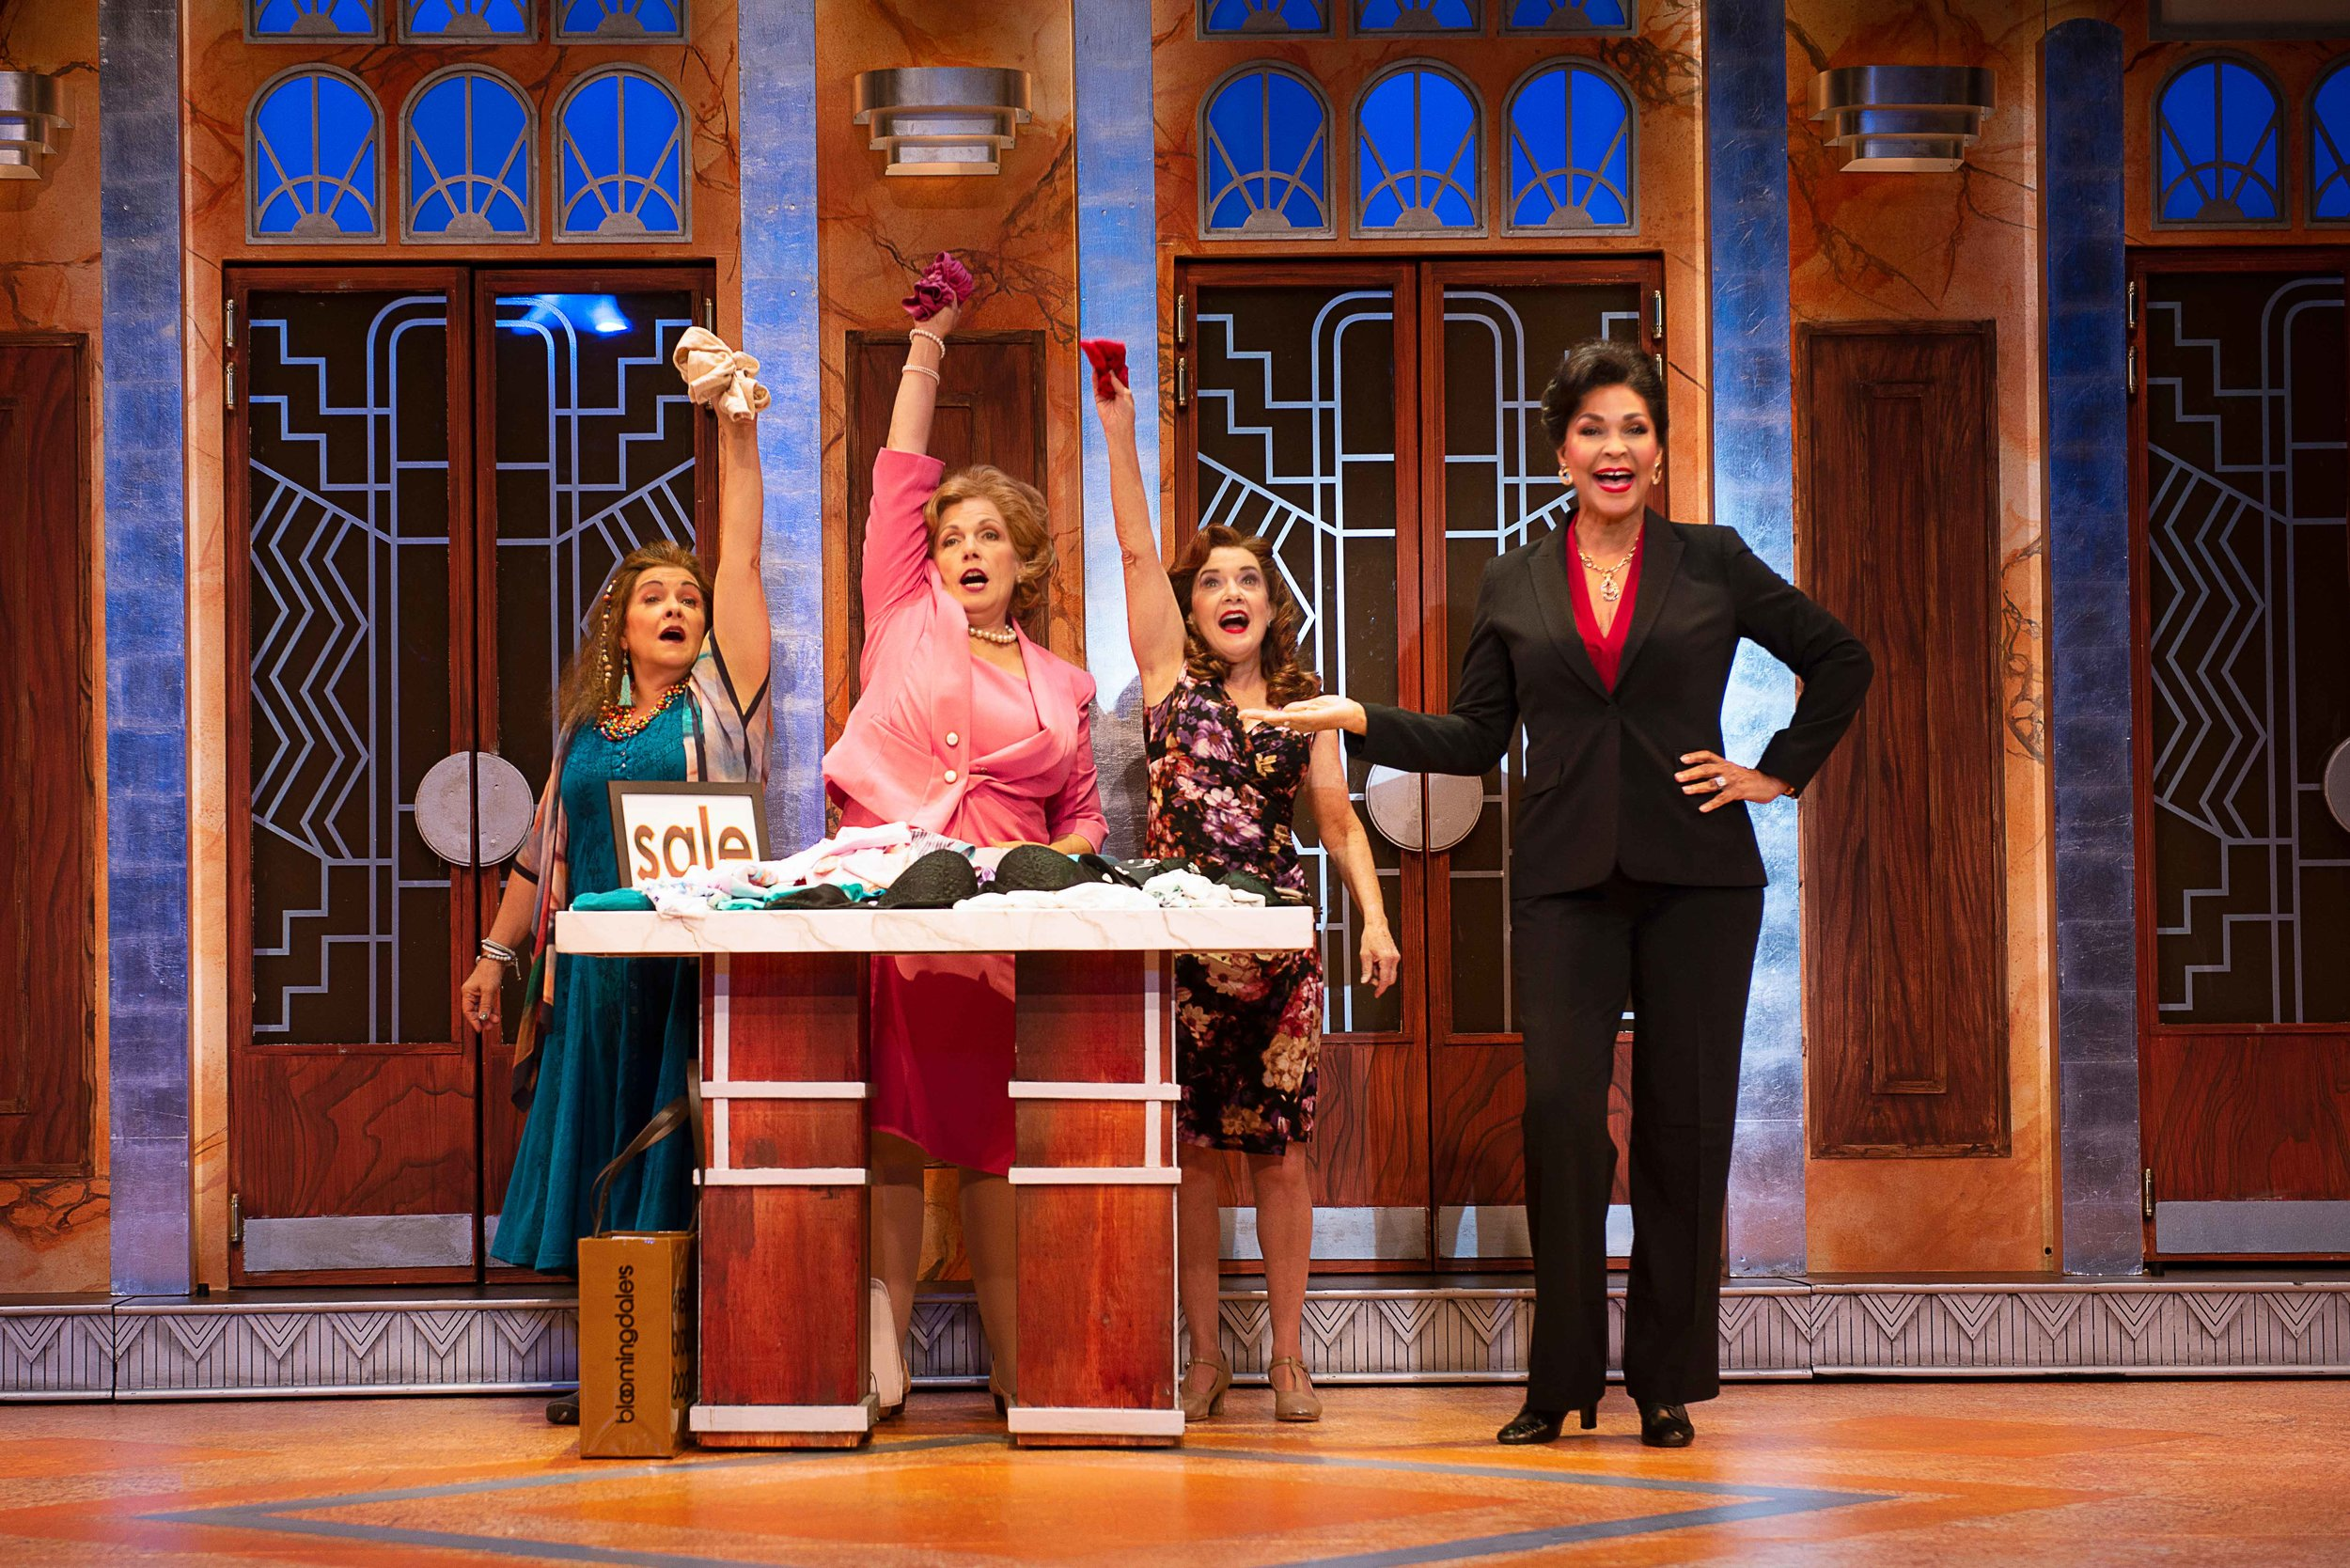 Melanie Souza, Roberta B. Wall, Kathy St. George, and Anise Ritchie in Menopause The Musical® (2019) Photo by Gary Ng